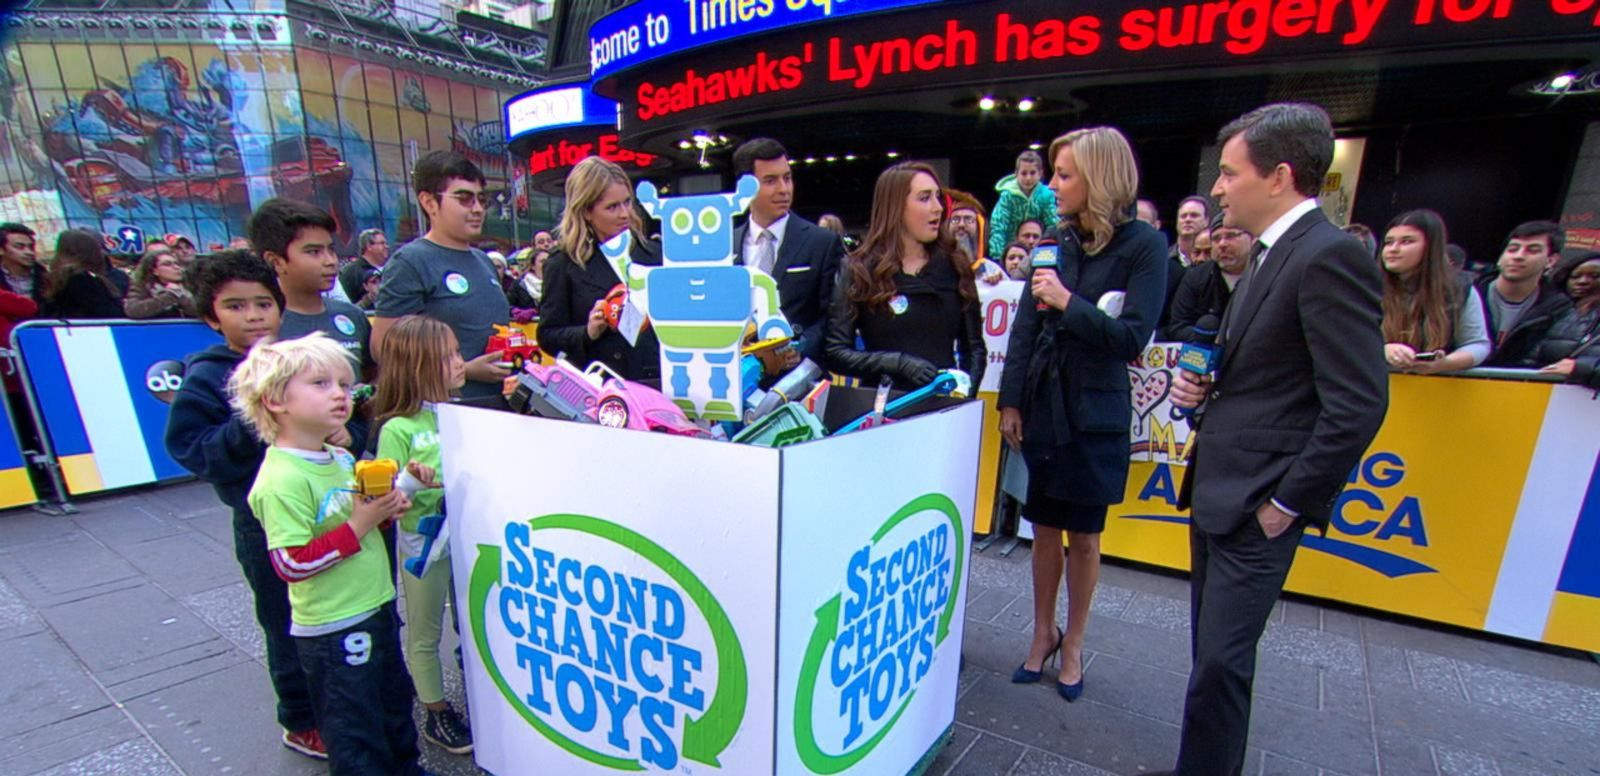 VIDEO: Second Chance Toys Recycles Plastic Toys to Give to Kids in Need